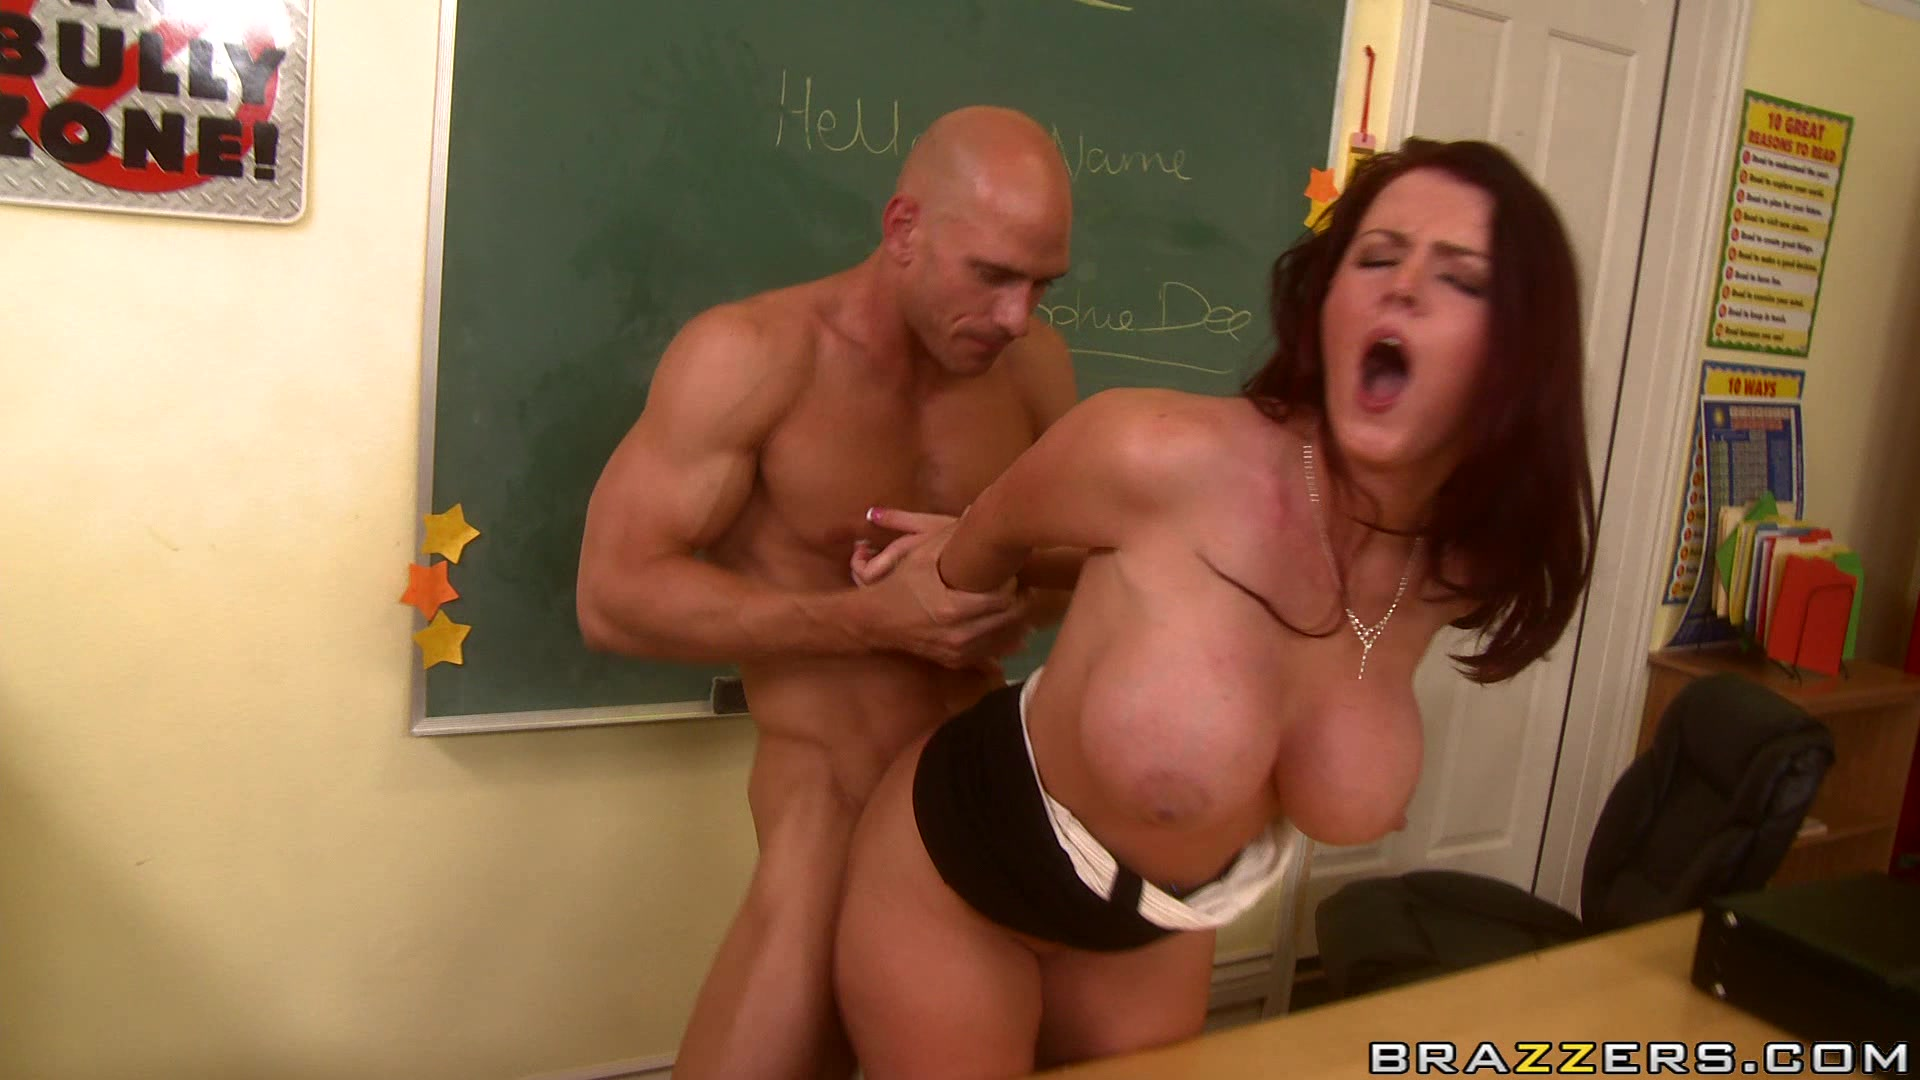 Big tits at school doggy with the dean scene starring len 6